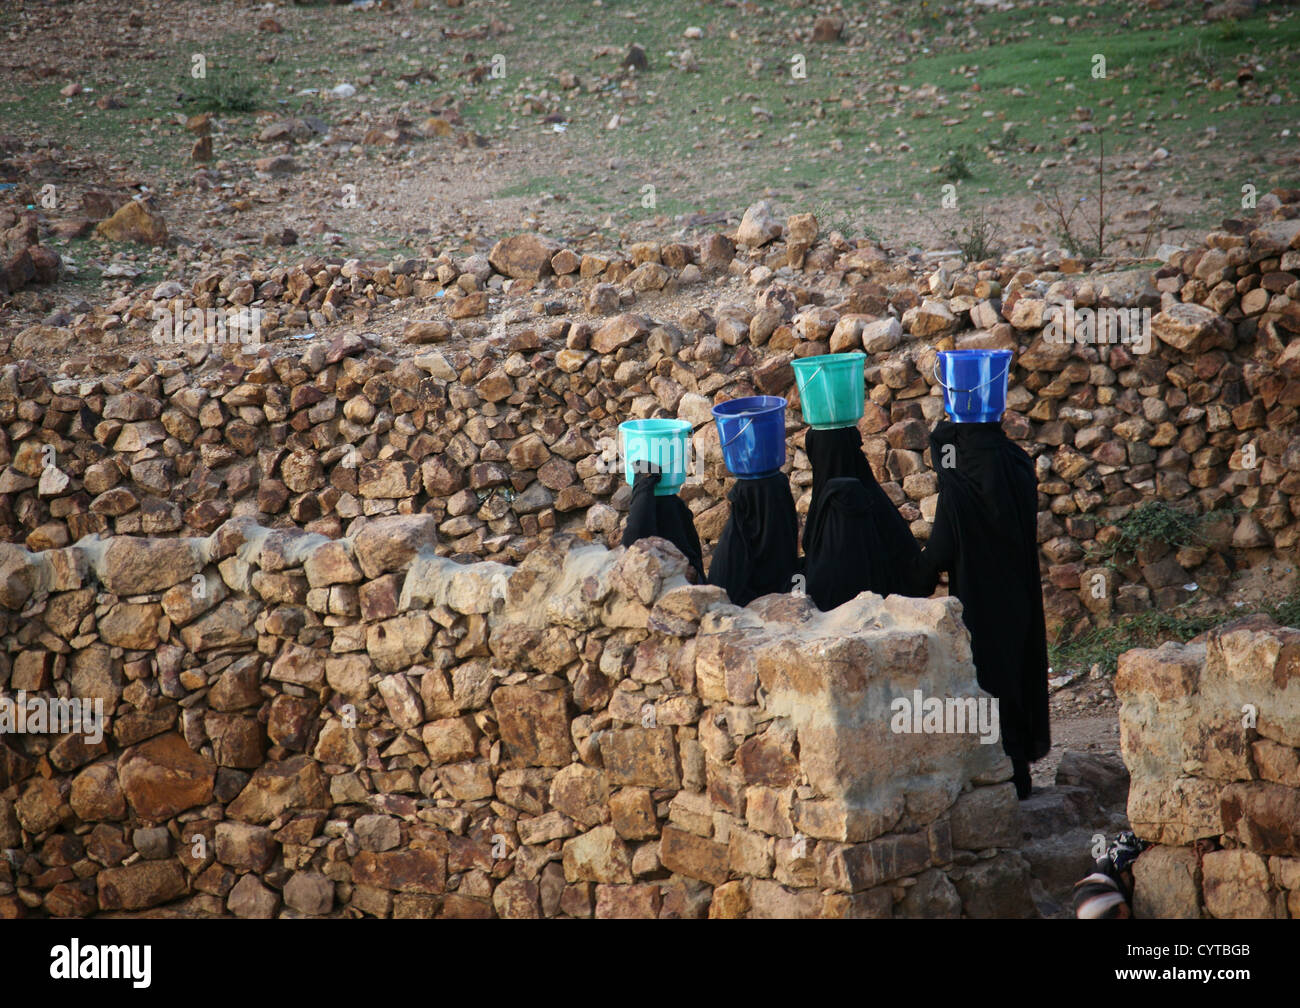 Women In Black Walking In Line With A Bucket On Their Head To Go Fetch Water, Shahara, Yemen - Stock Image